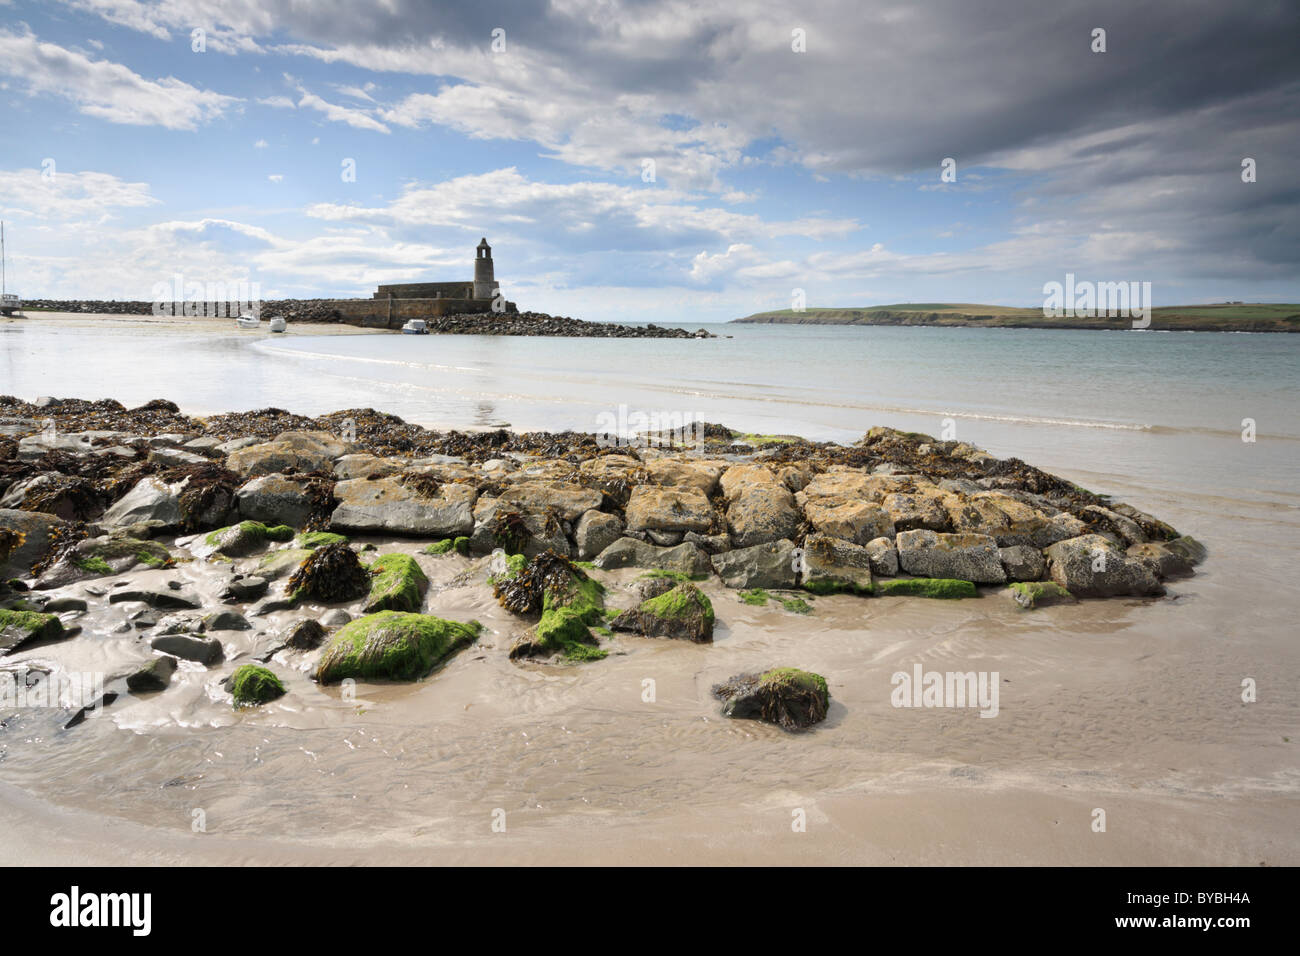 The view across Port Logan beach towards the pier and lighthouse on Scotlands Rhins peninsular - Stock Image